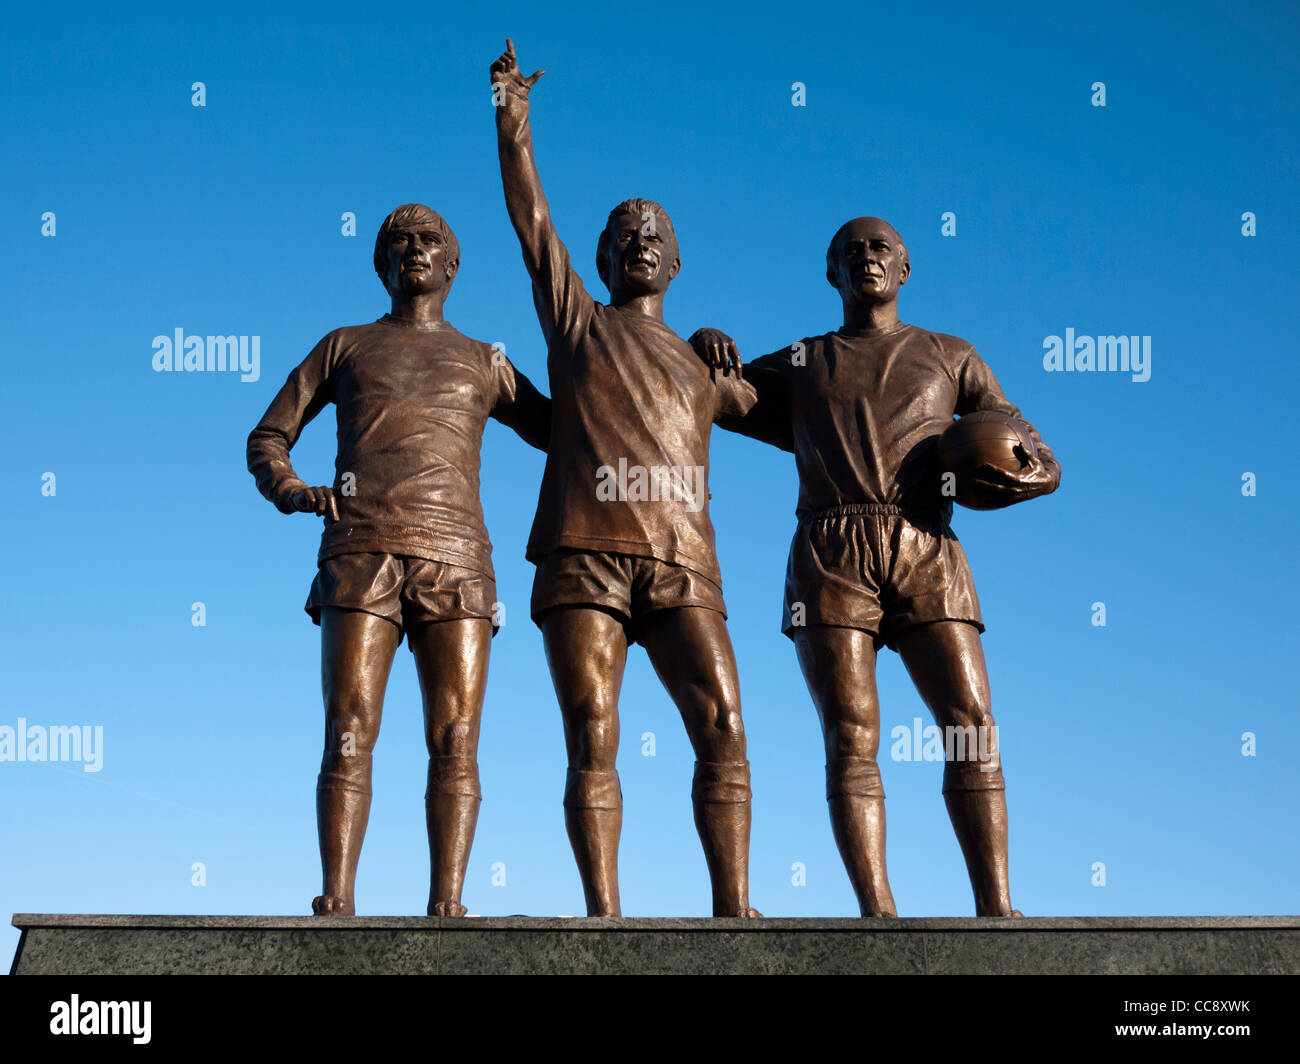 Statues of Sir Bobby Charlton, George Best and Denis Law statue at Old Trafford, Manchester United football ground - Stock Image